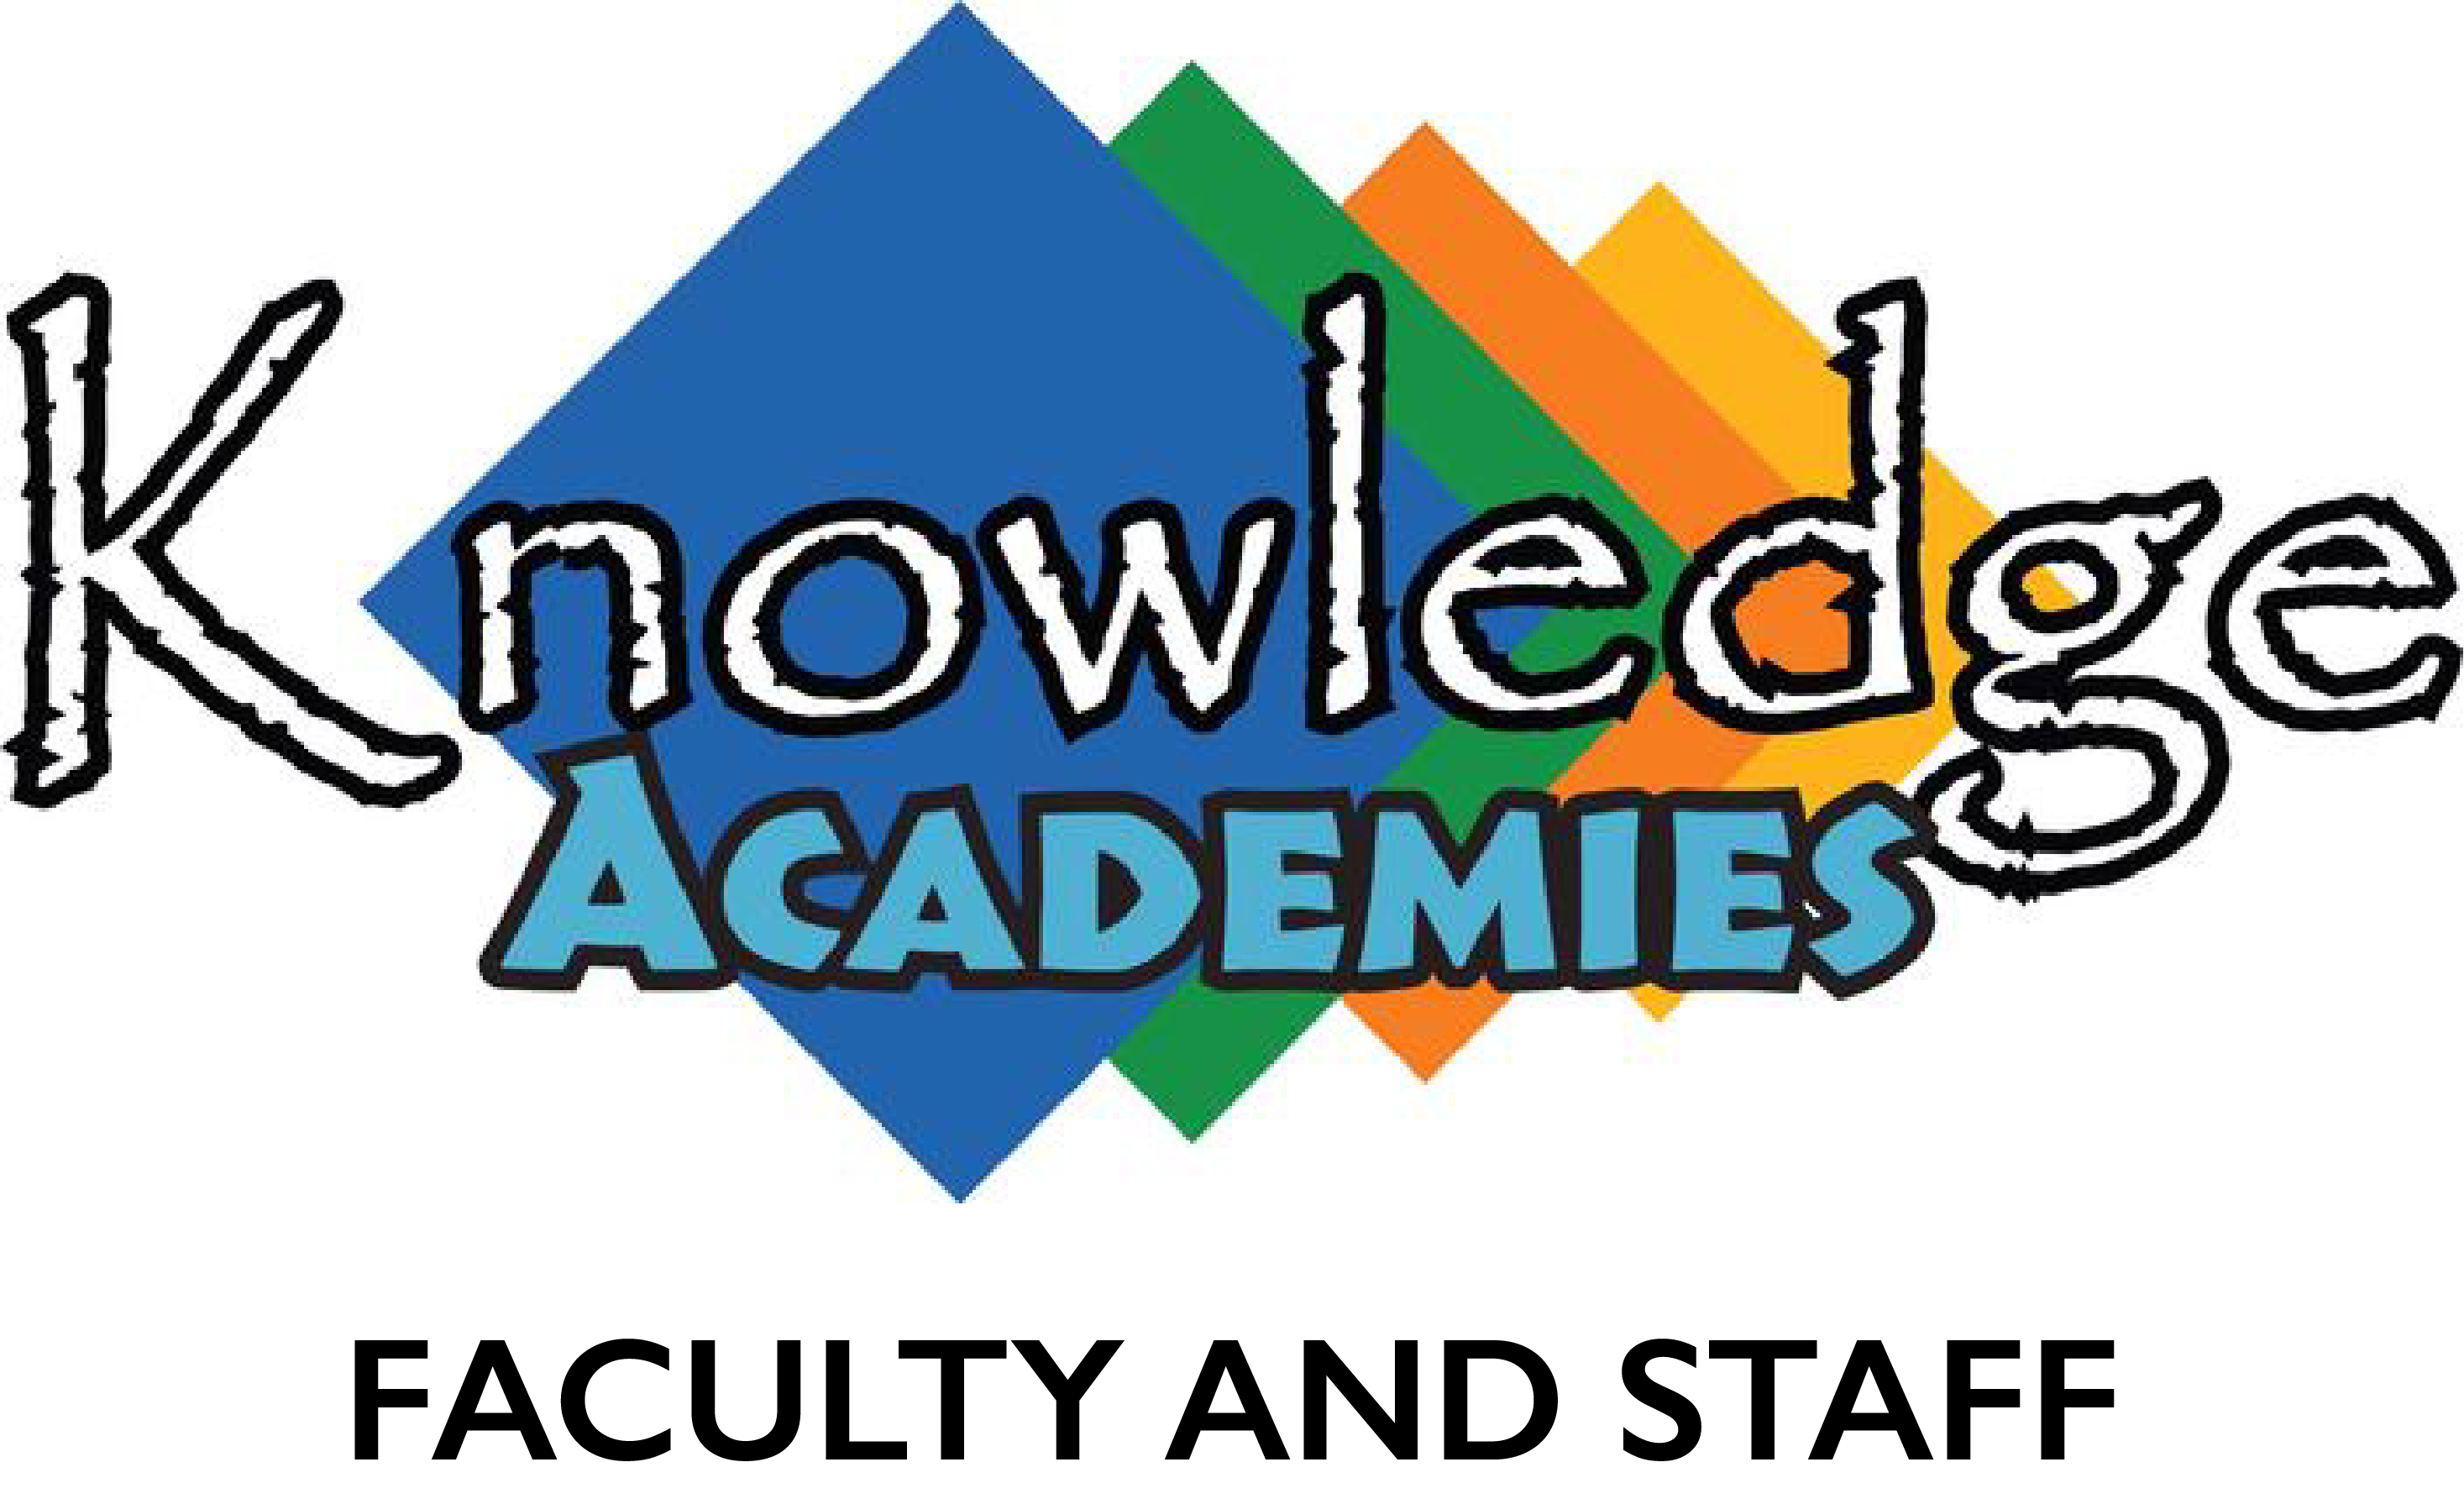 Knowledge Academy Logo for Staff and Faculty Uniforms